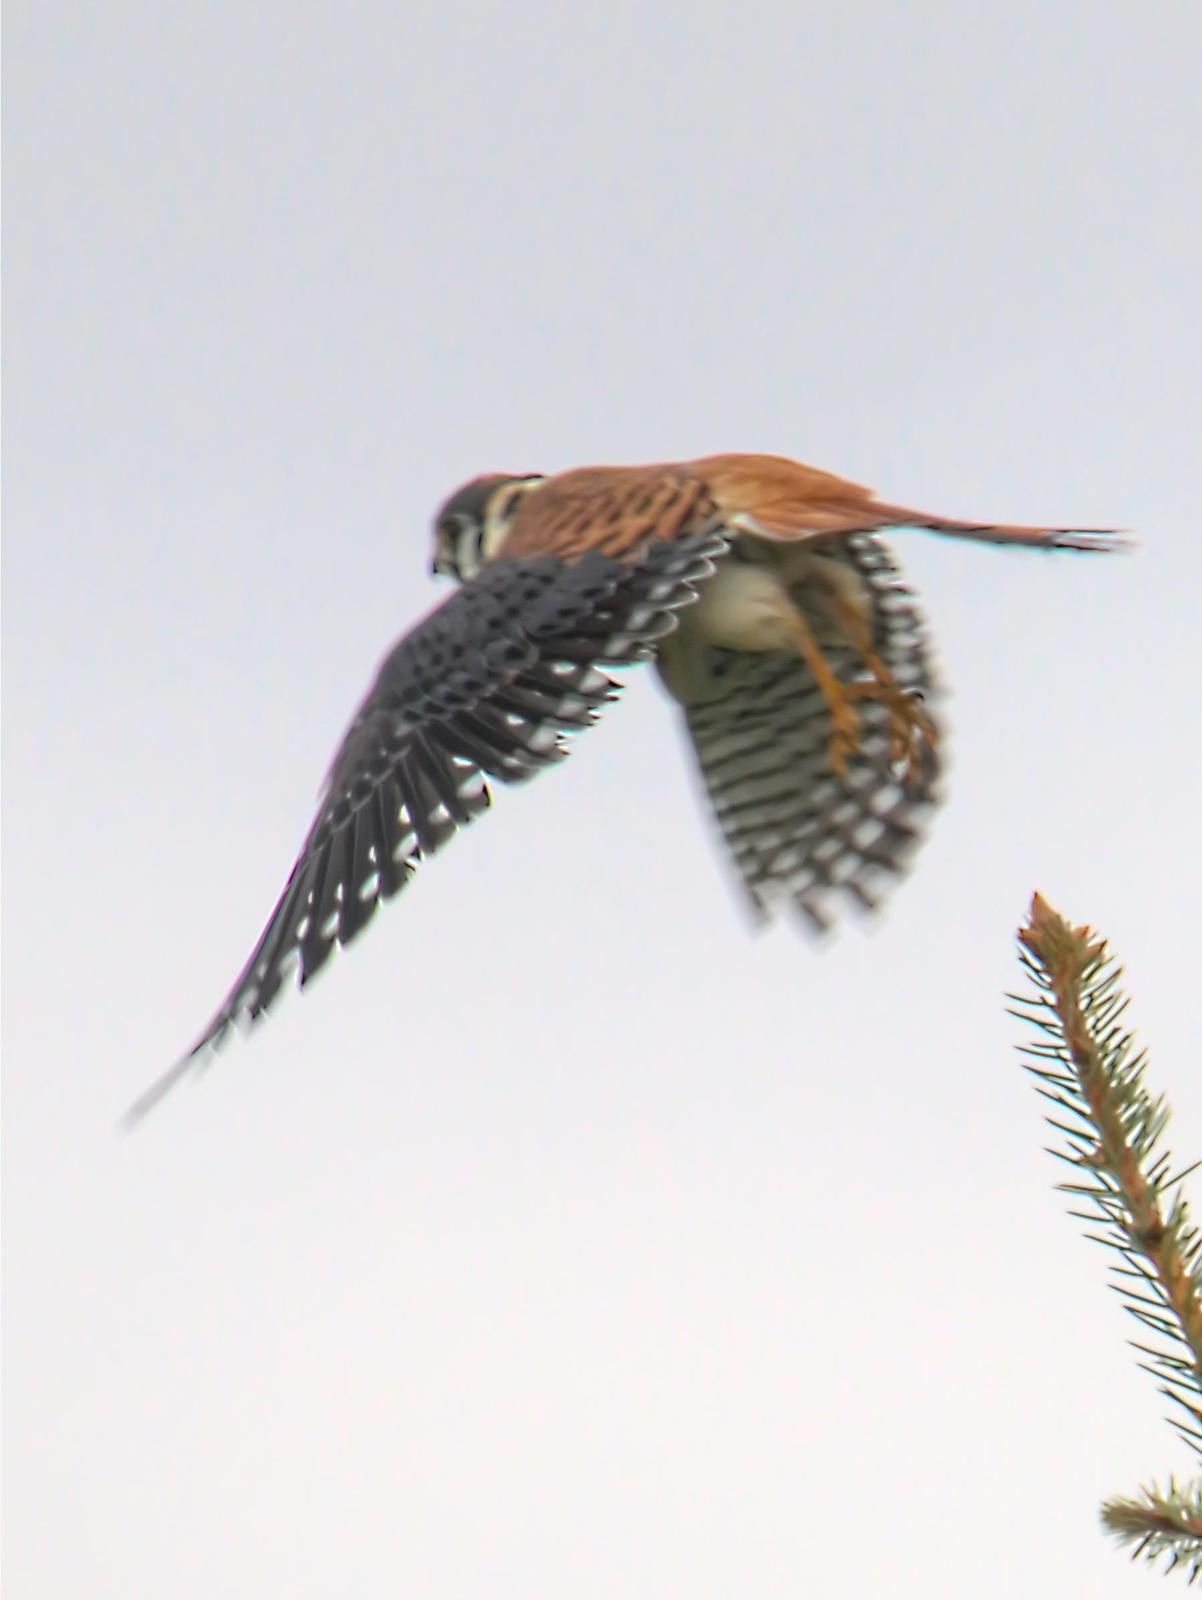 American Kestrel Photo by Dan Tallman